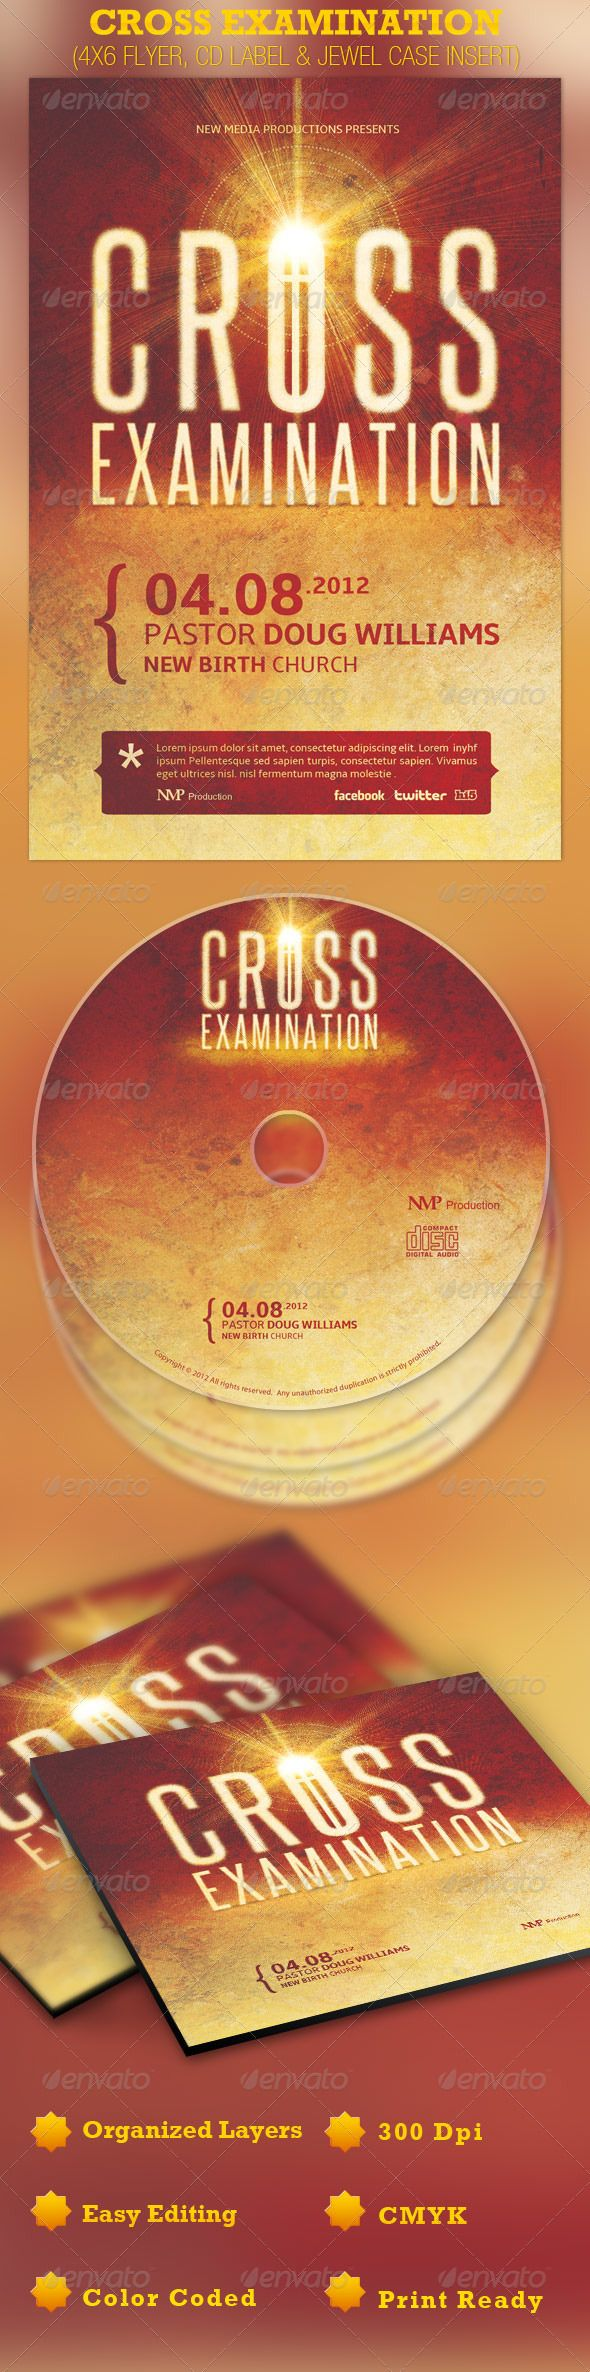 Cross Examination Flyer Cd And Jewel Case  Jewel Gospel Concert